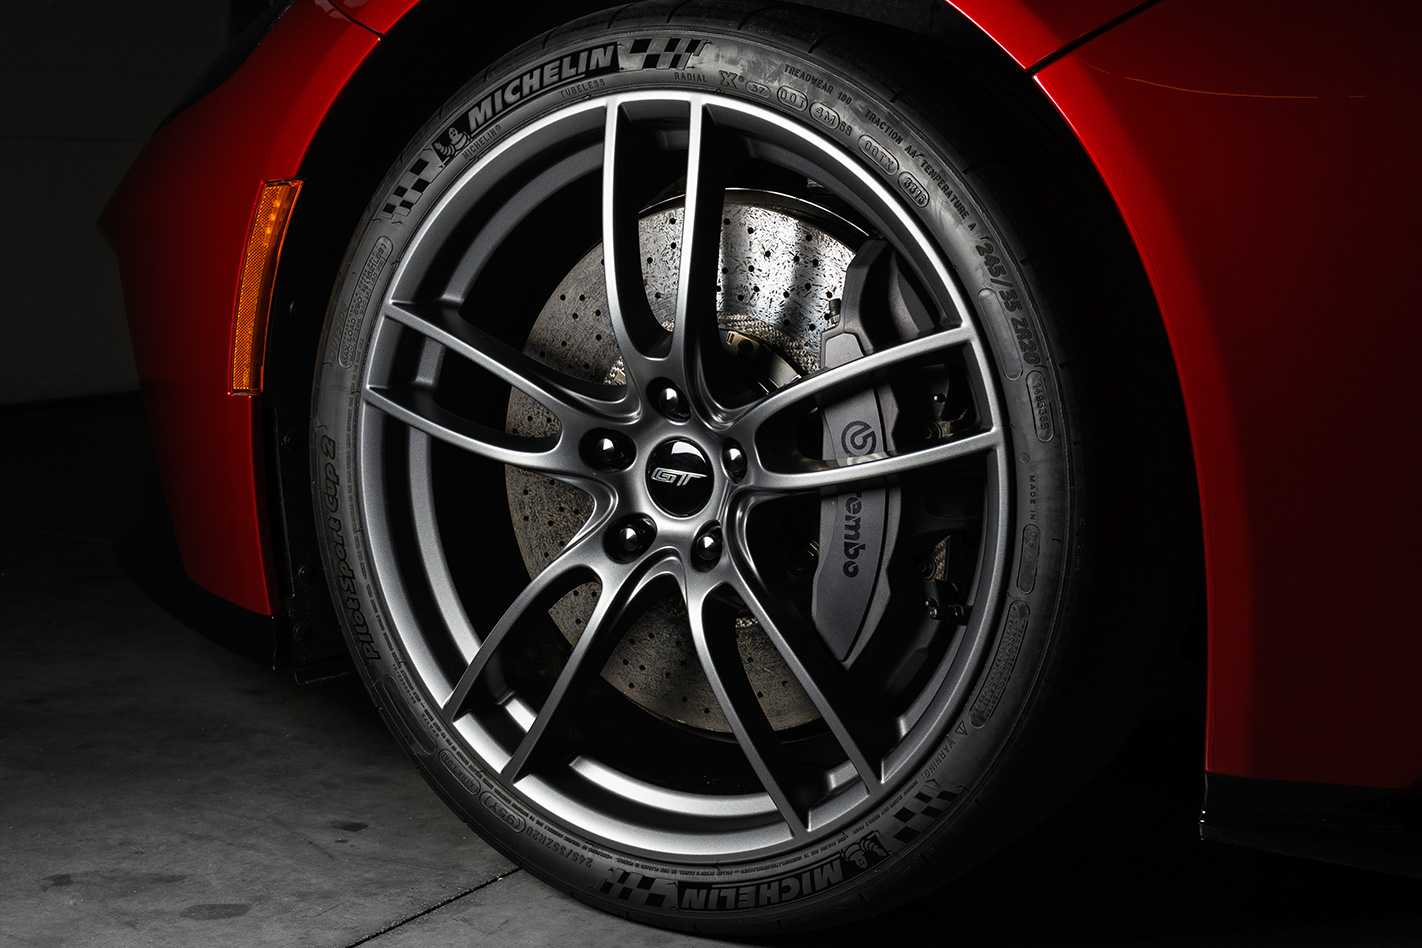 2017 Ford Mustang GT red wheel